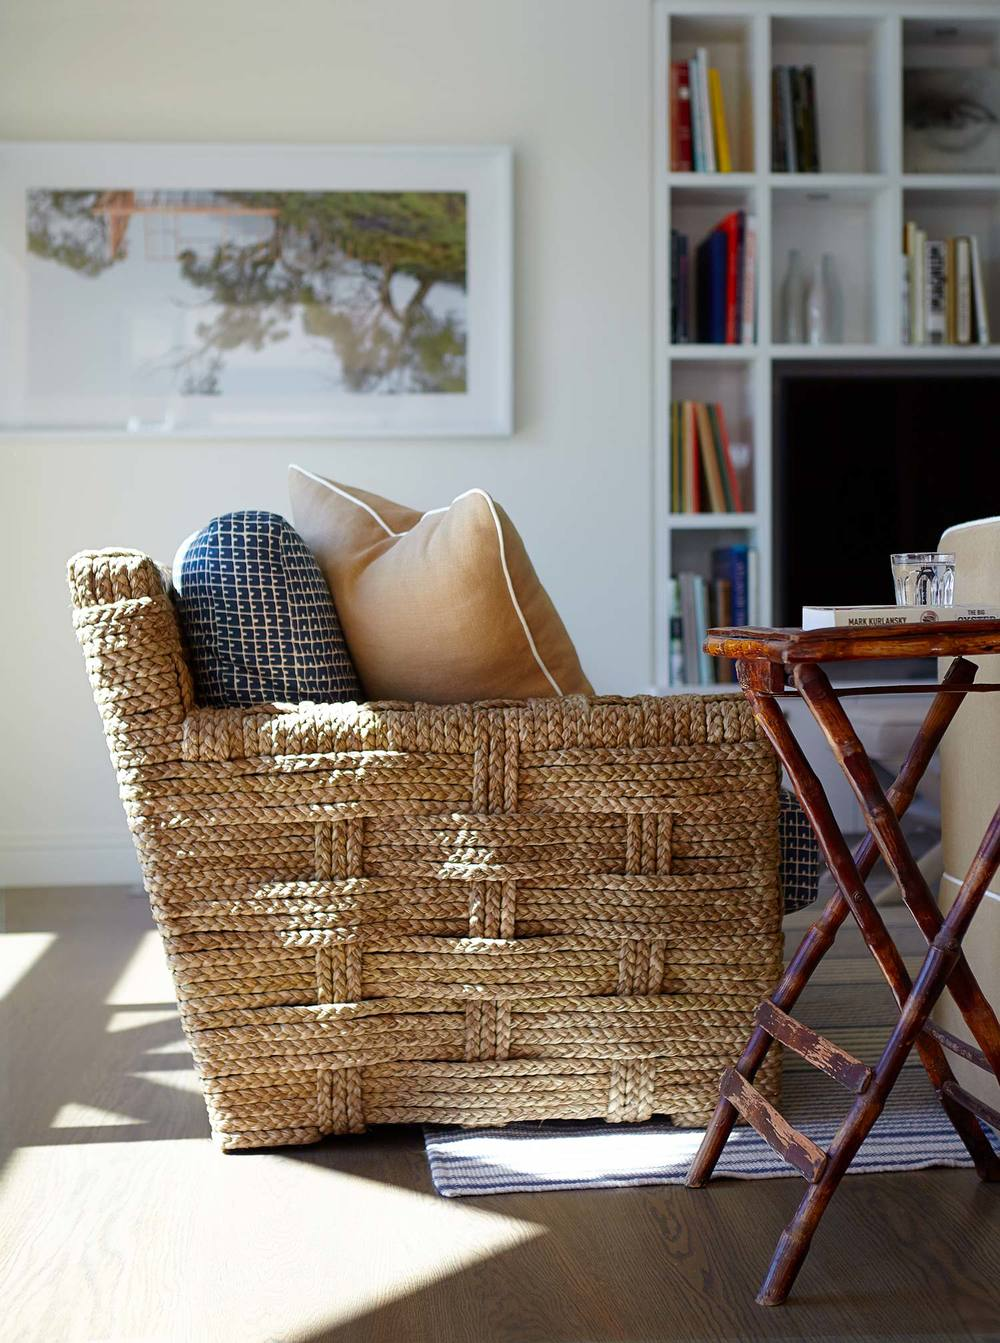 beach-house-living-room-wicker-caned-armchair-patterned-cushions-stripe-rug-neutral-sisal-palette-custom-joinery-white-lacquer-bookshelves-tv-unit-bamboo-butlers-tray-table-diane-bergeron.jpg